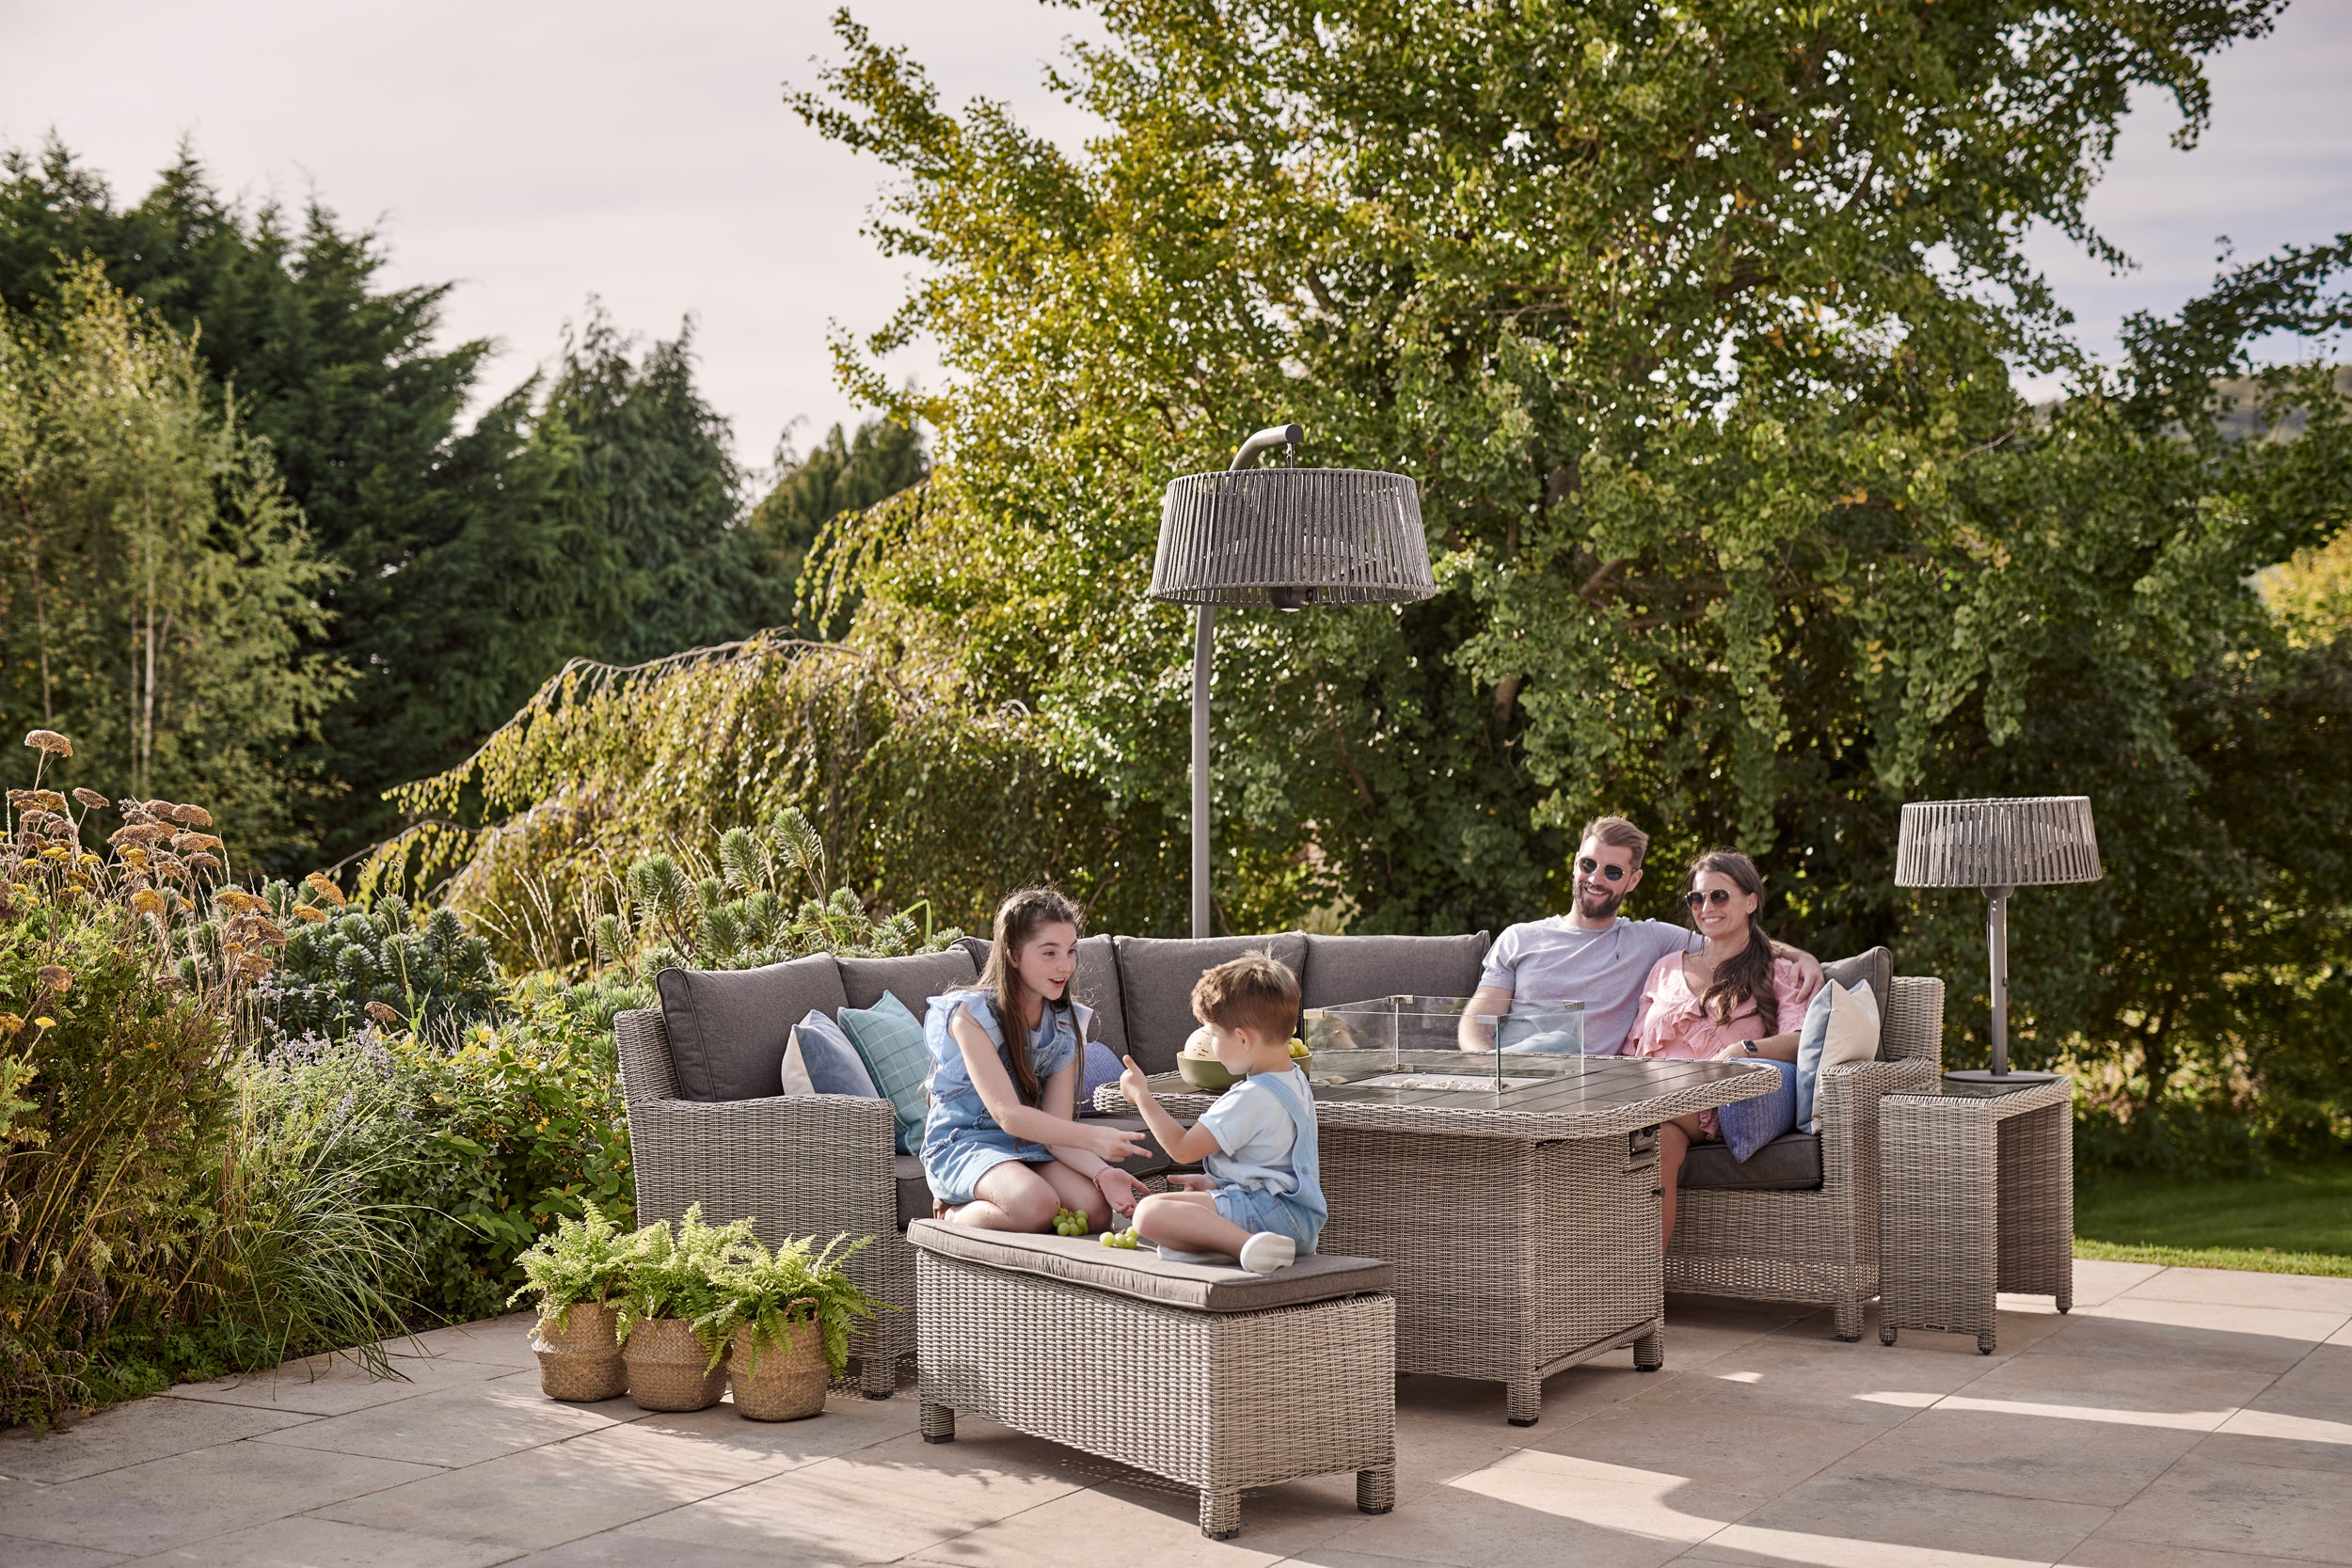 Win A Kettler Garden Set With Fire Pit Table Worth £2,399